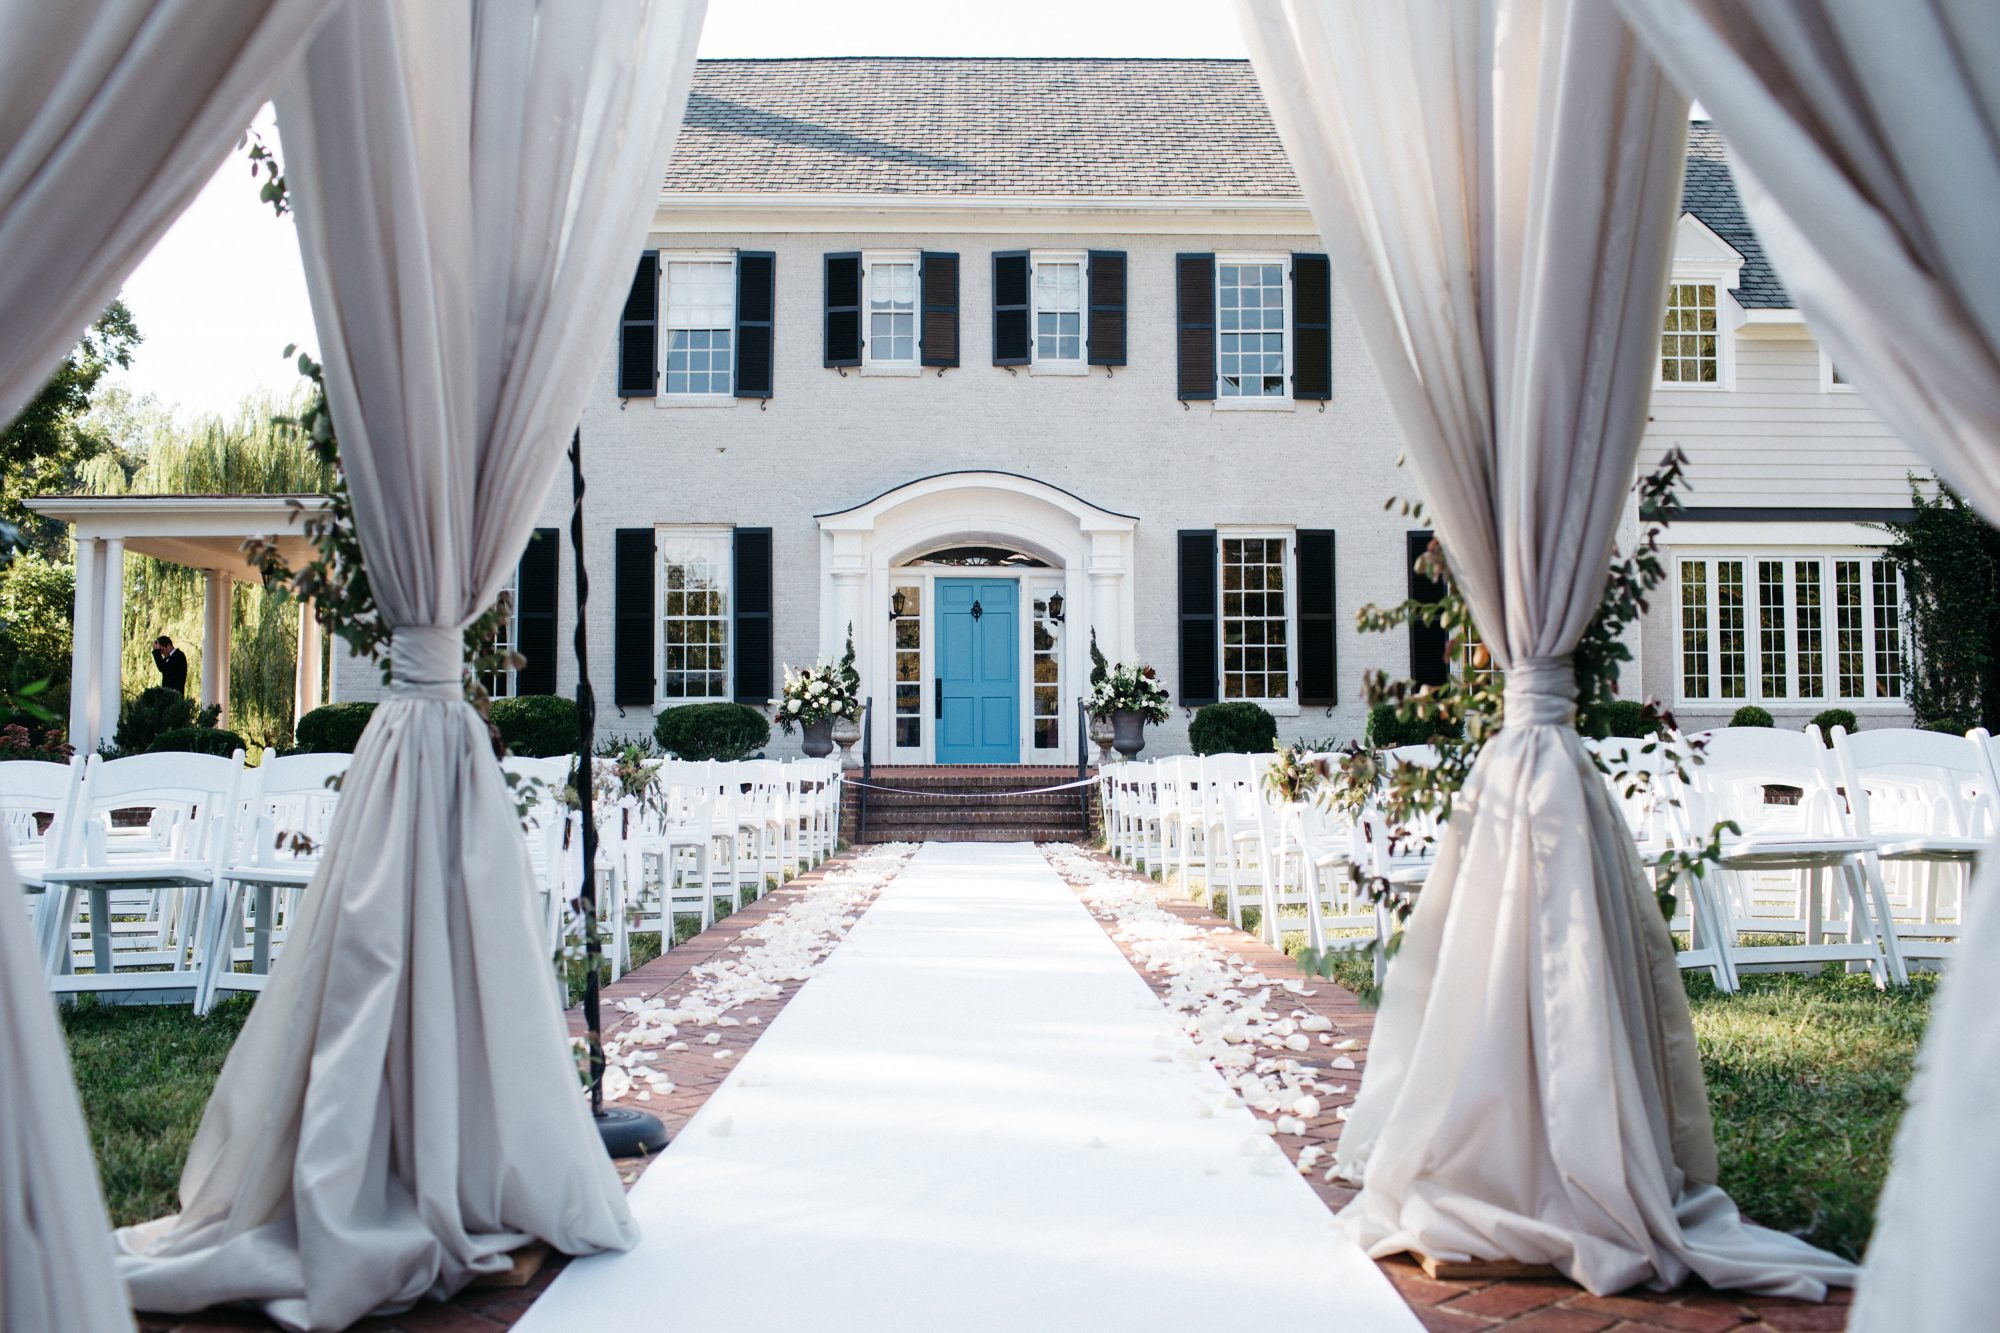 10 Things You Didn\'t Know About Hosting a Wedding at Home - Southern ...